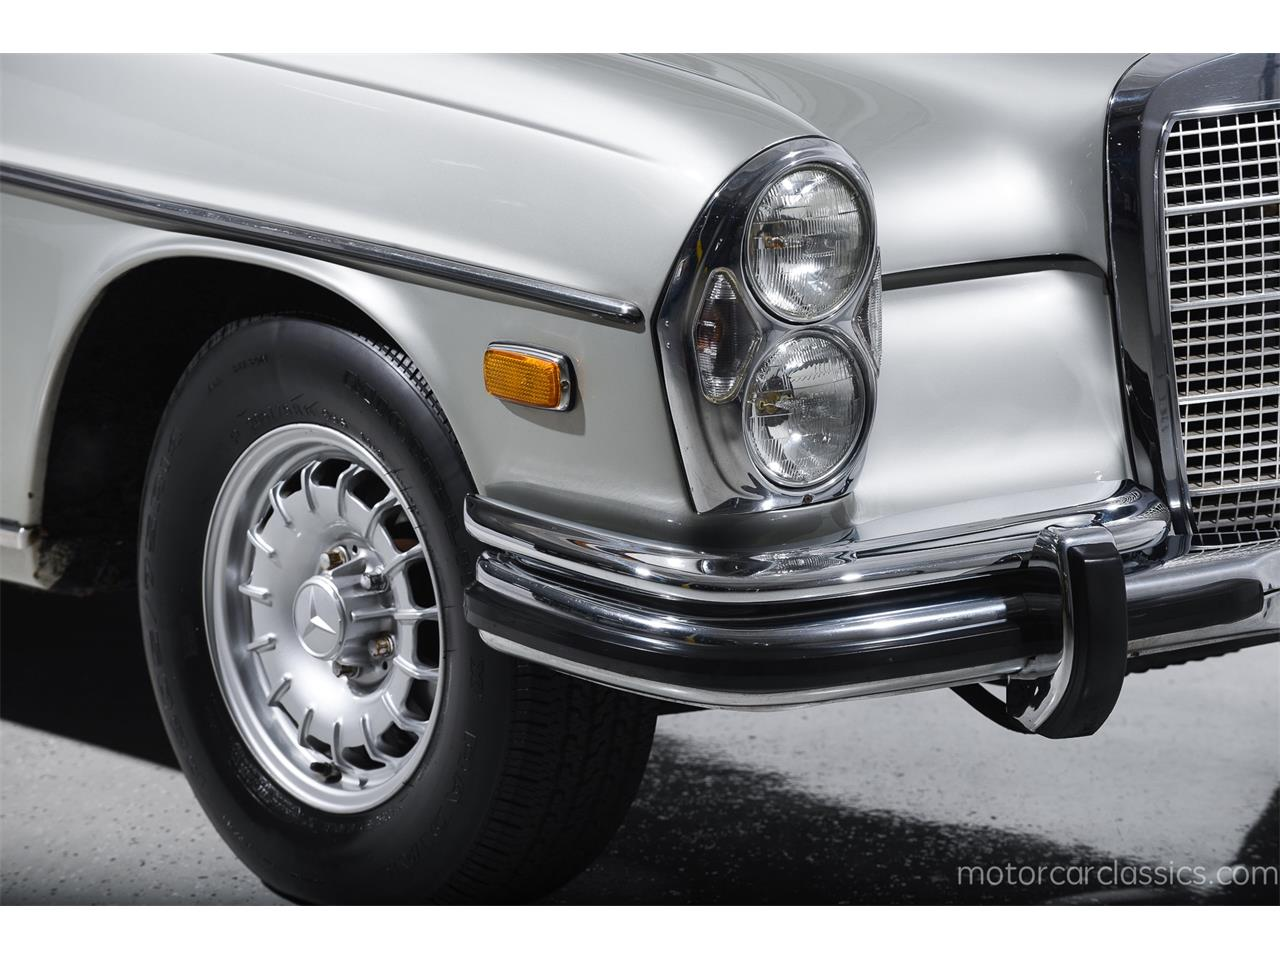 1971 Mercedes-Benz 300SEL for sale in Farmingdale, NY – photo 11